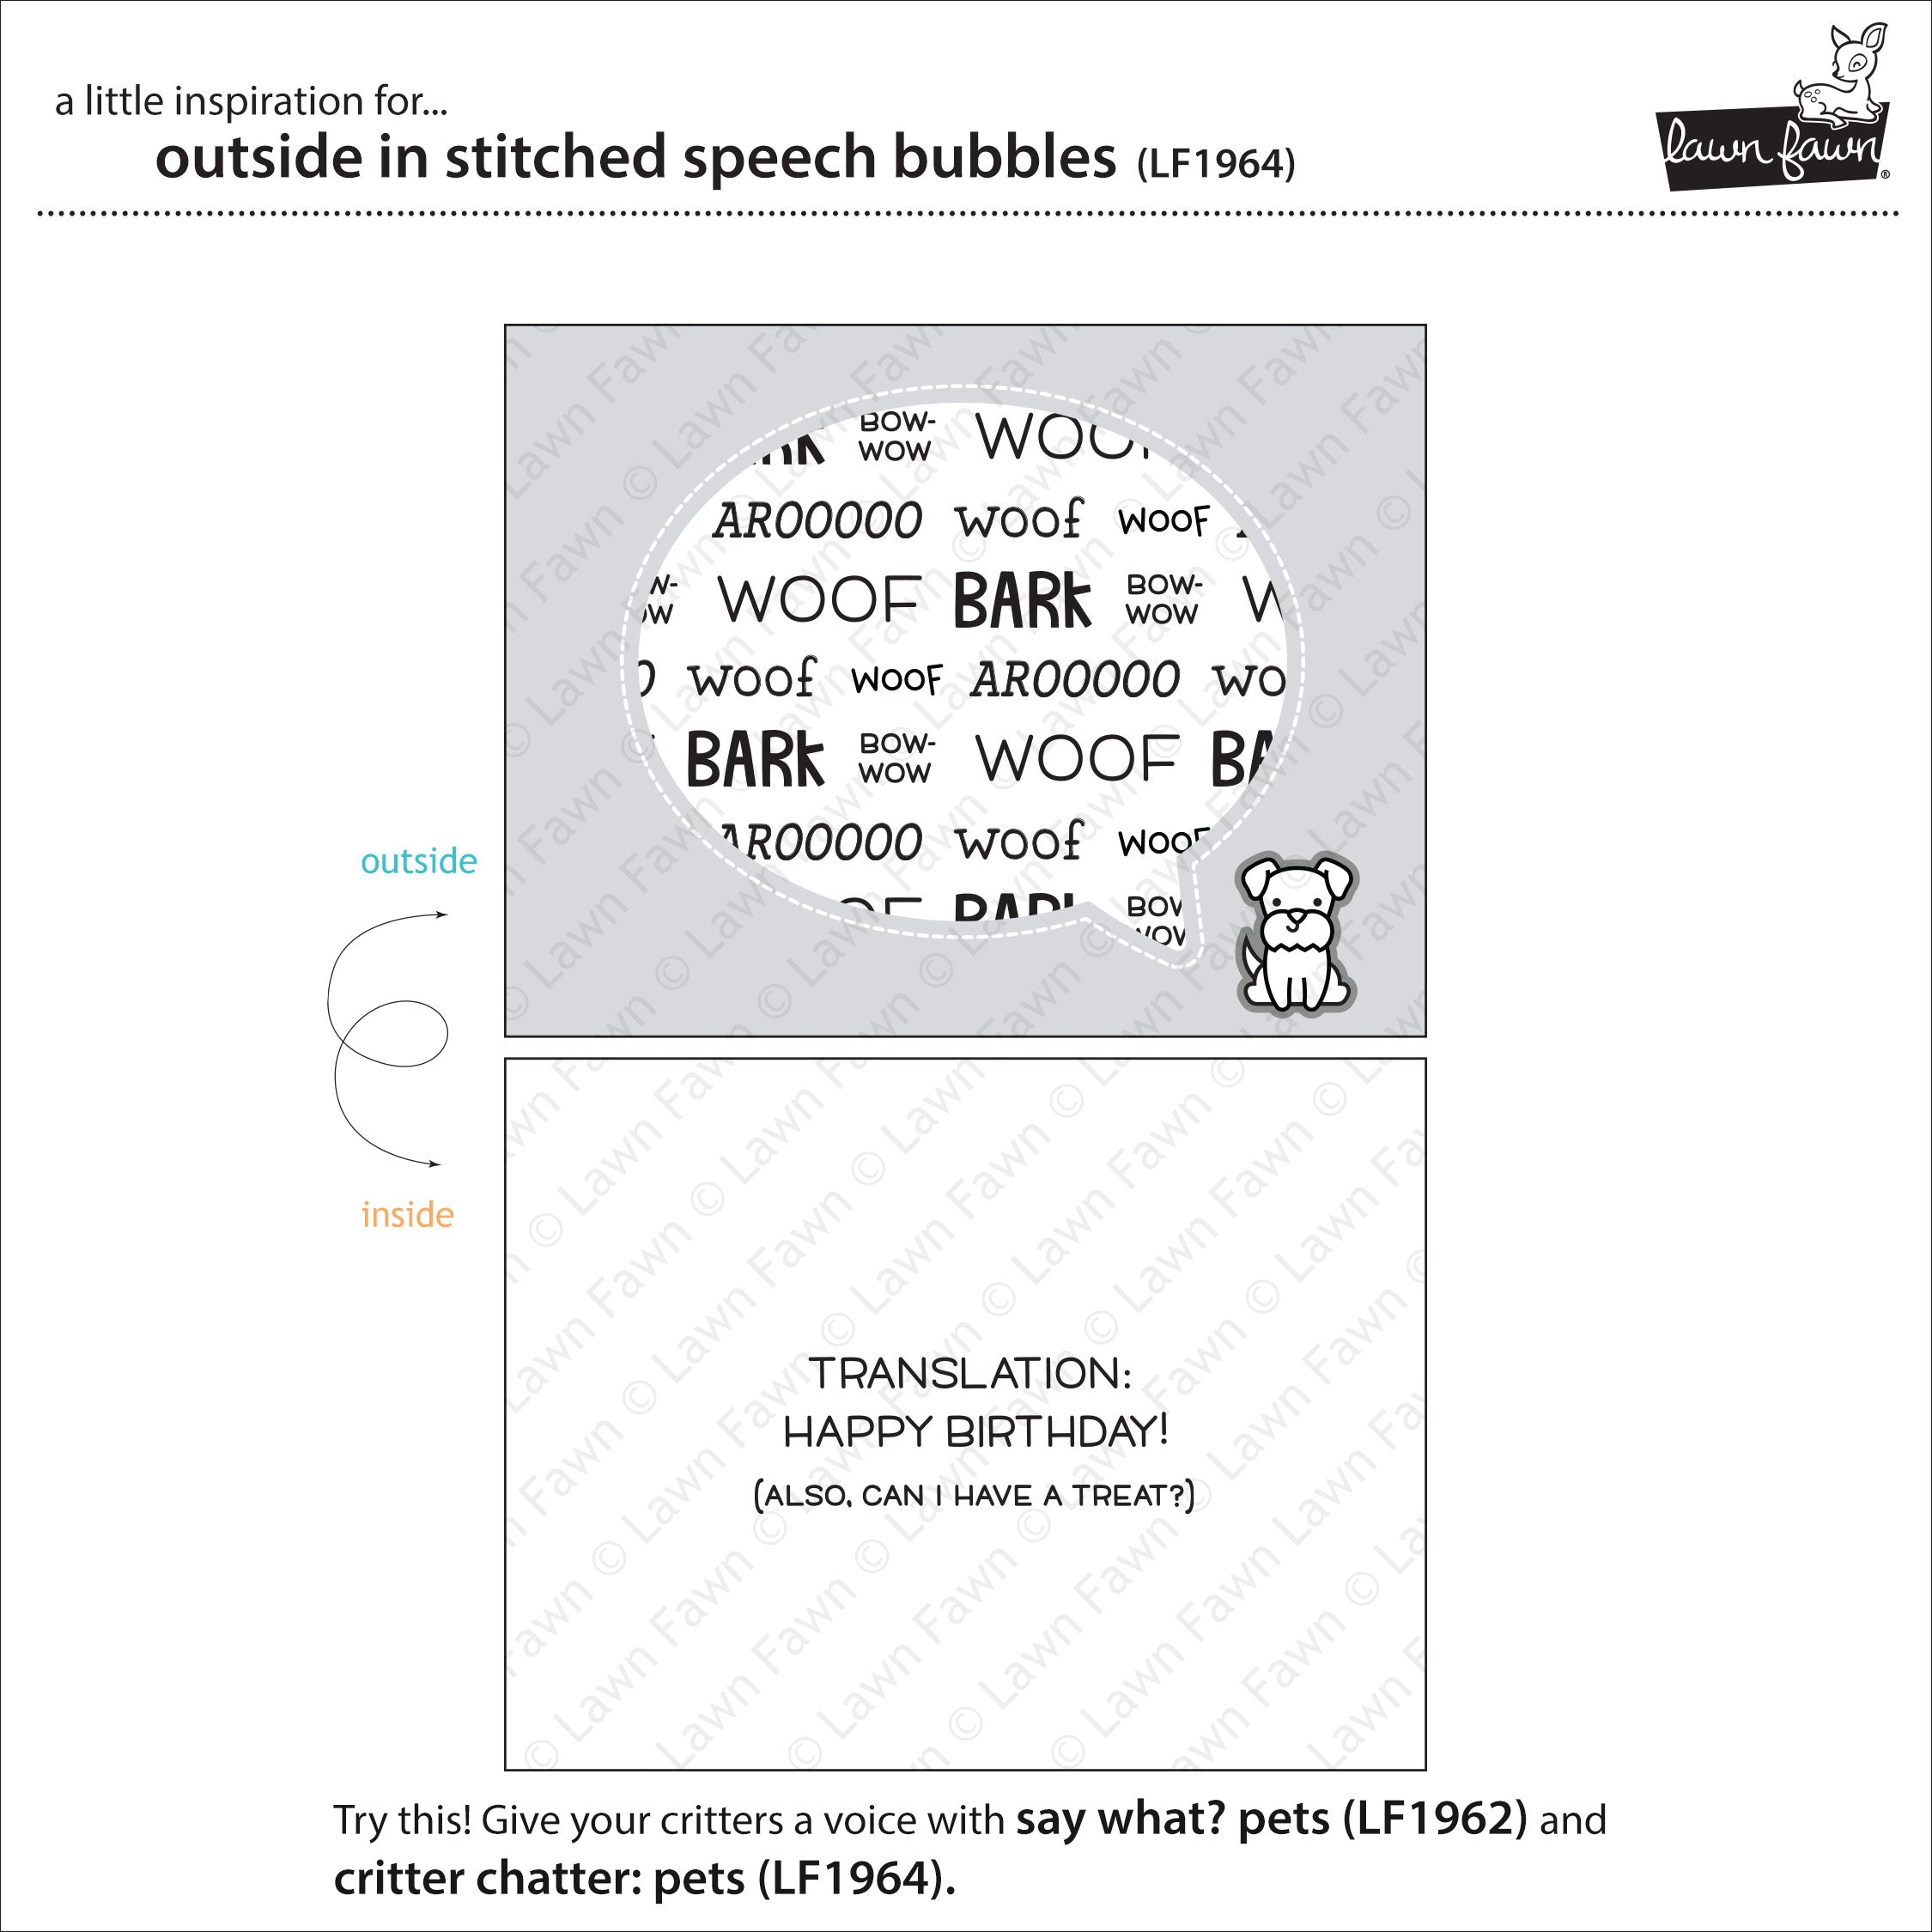 outside in stitched speech bubbles